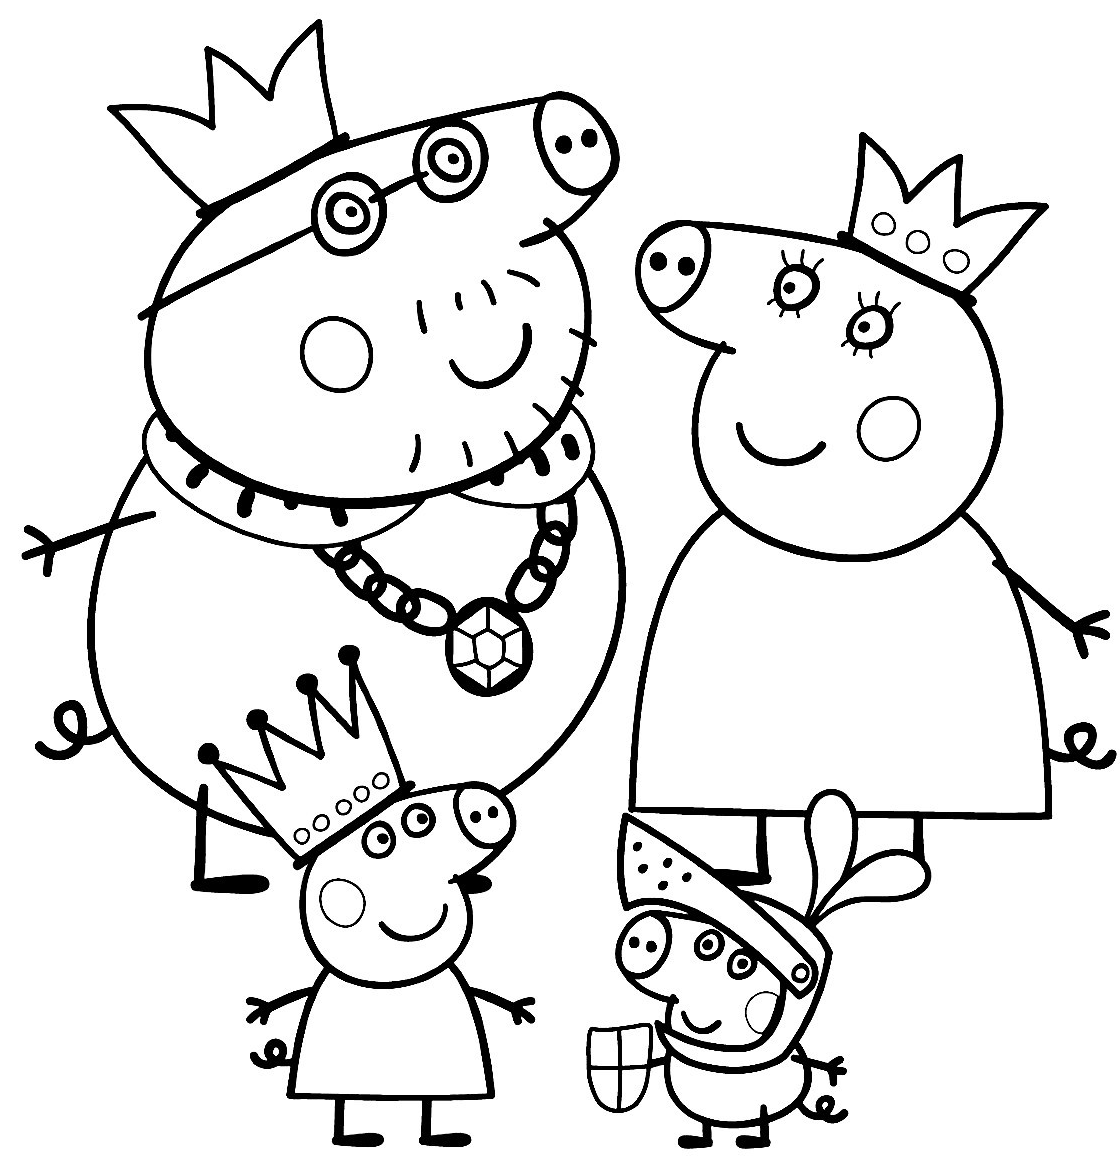 1120x1172 Best Ipbbert On Peppa Pig Coloring Pages On With Hd Resolution